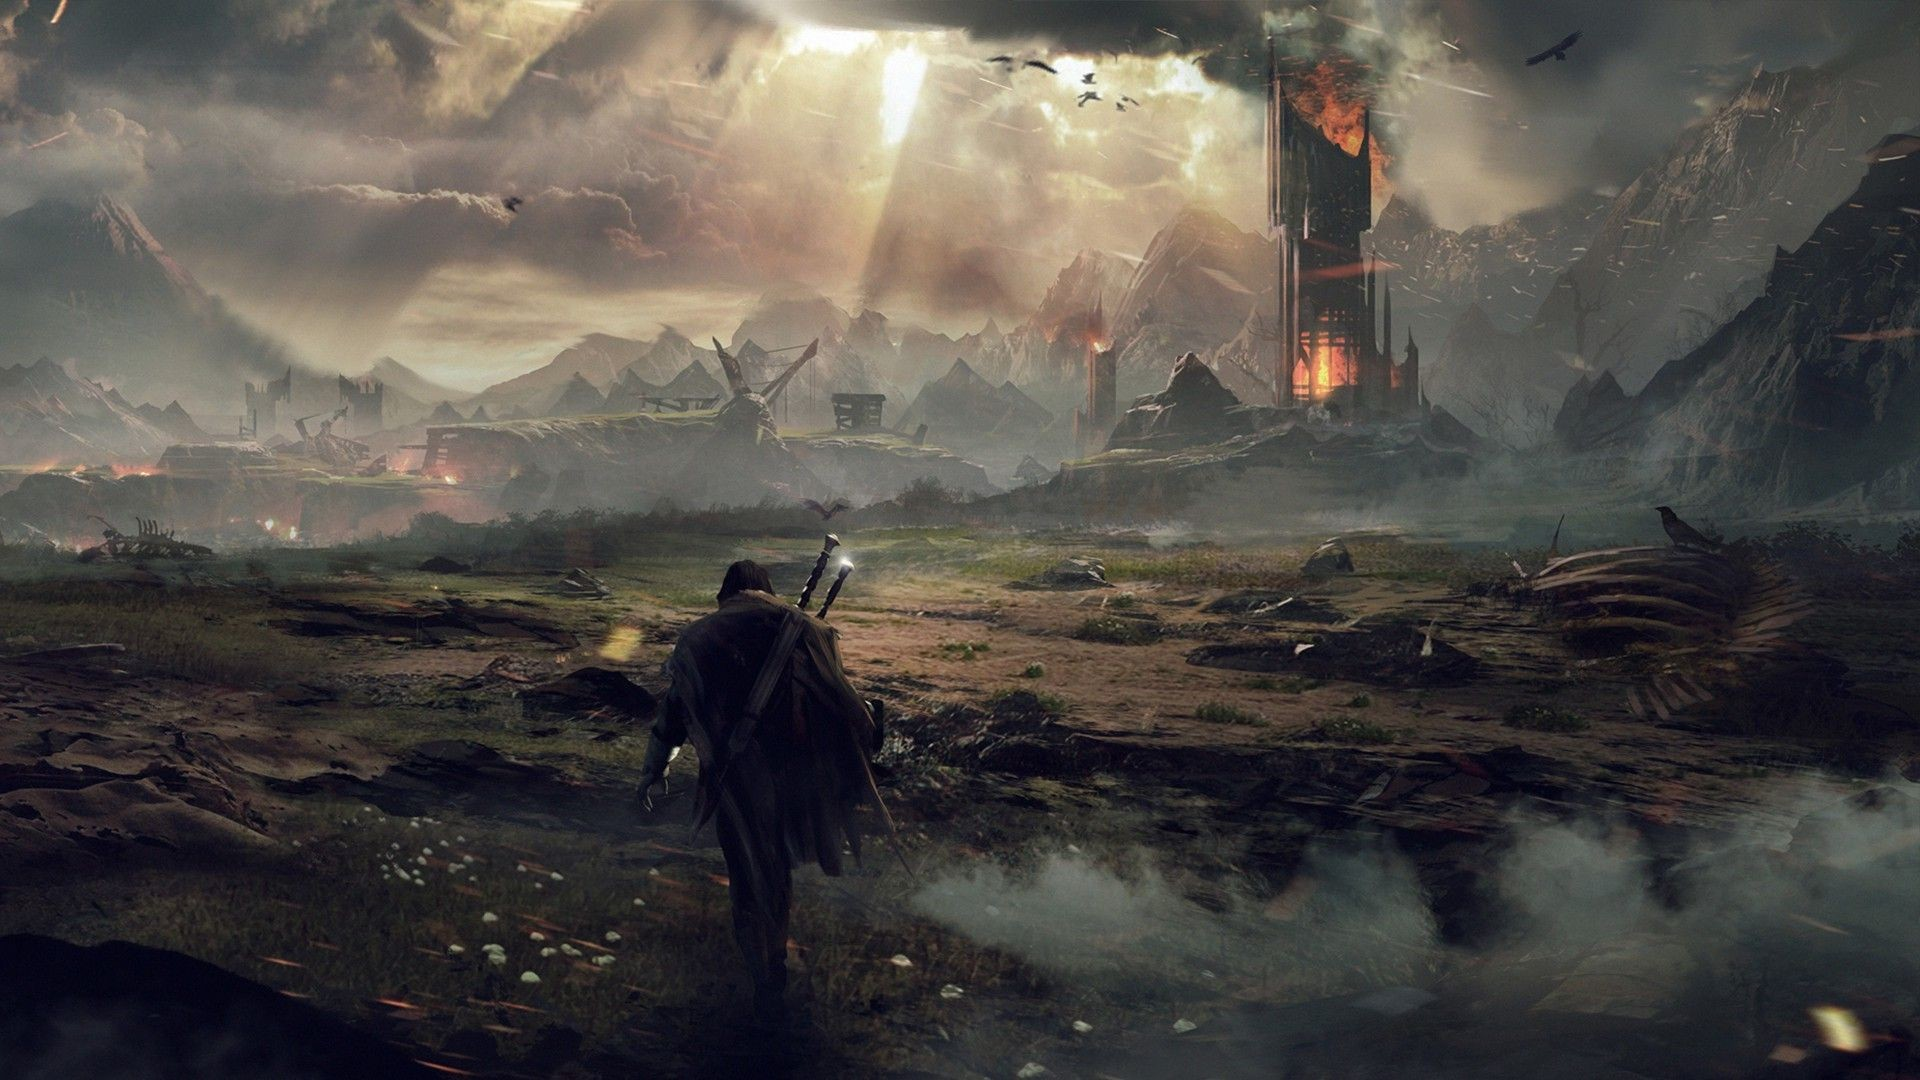 Res: 1920x1080, Middle-Earth: Shadow of Mordor - The Blast review - Blast